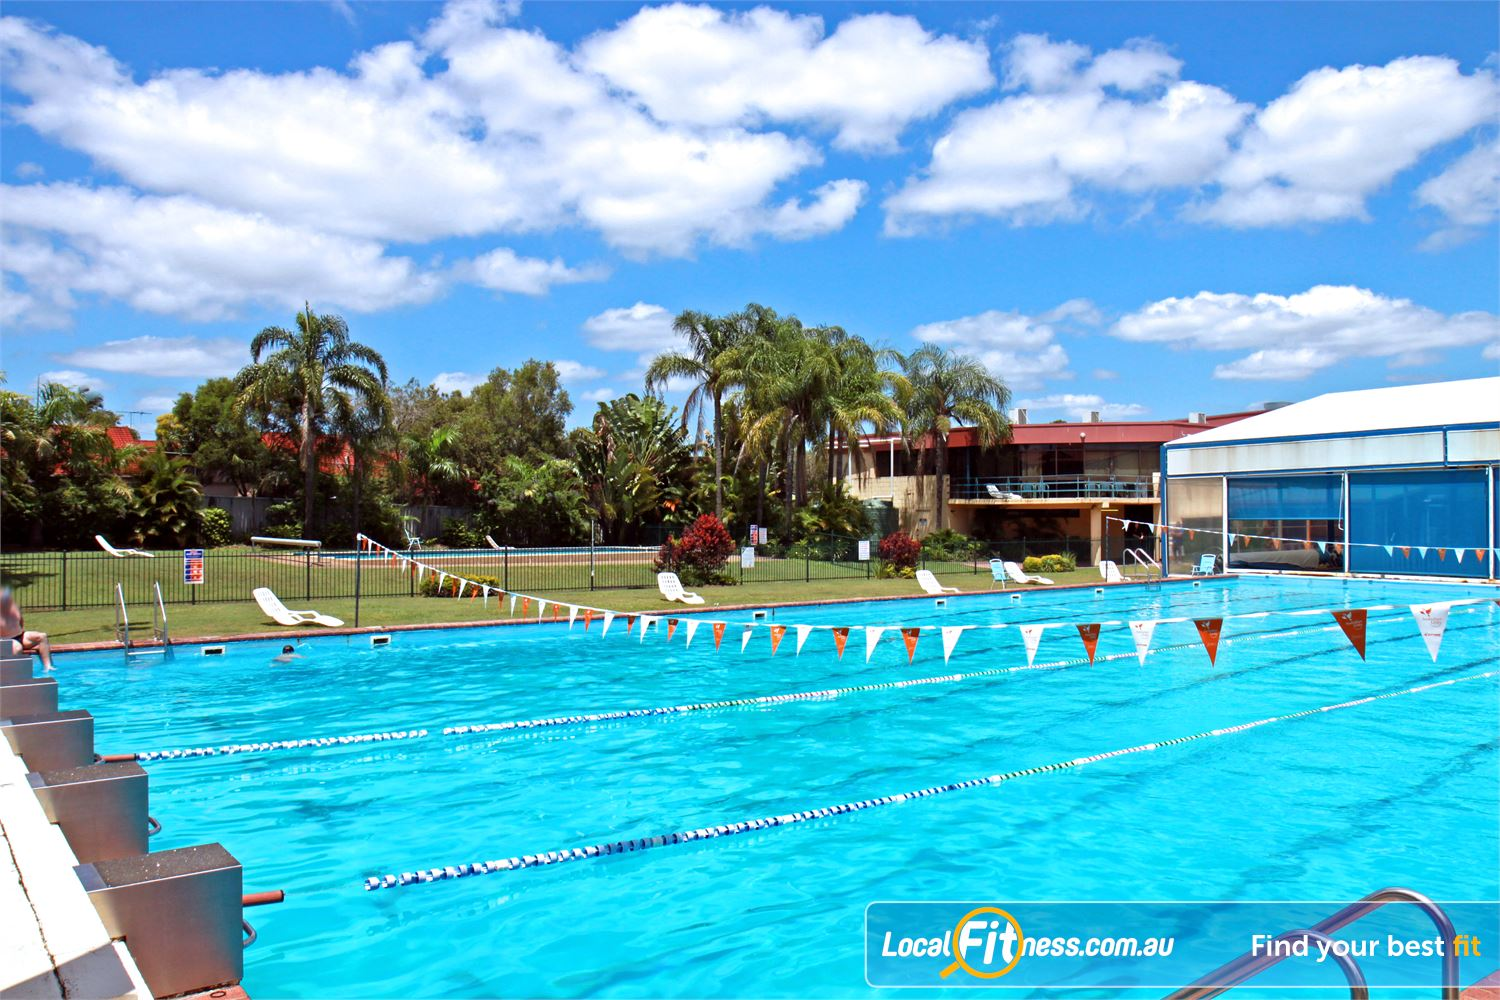 Goodlife Health Clubs Alexandra Hills The outdoor Alexandra Hills swimming pool.